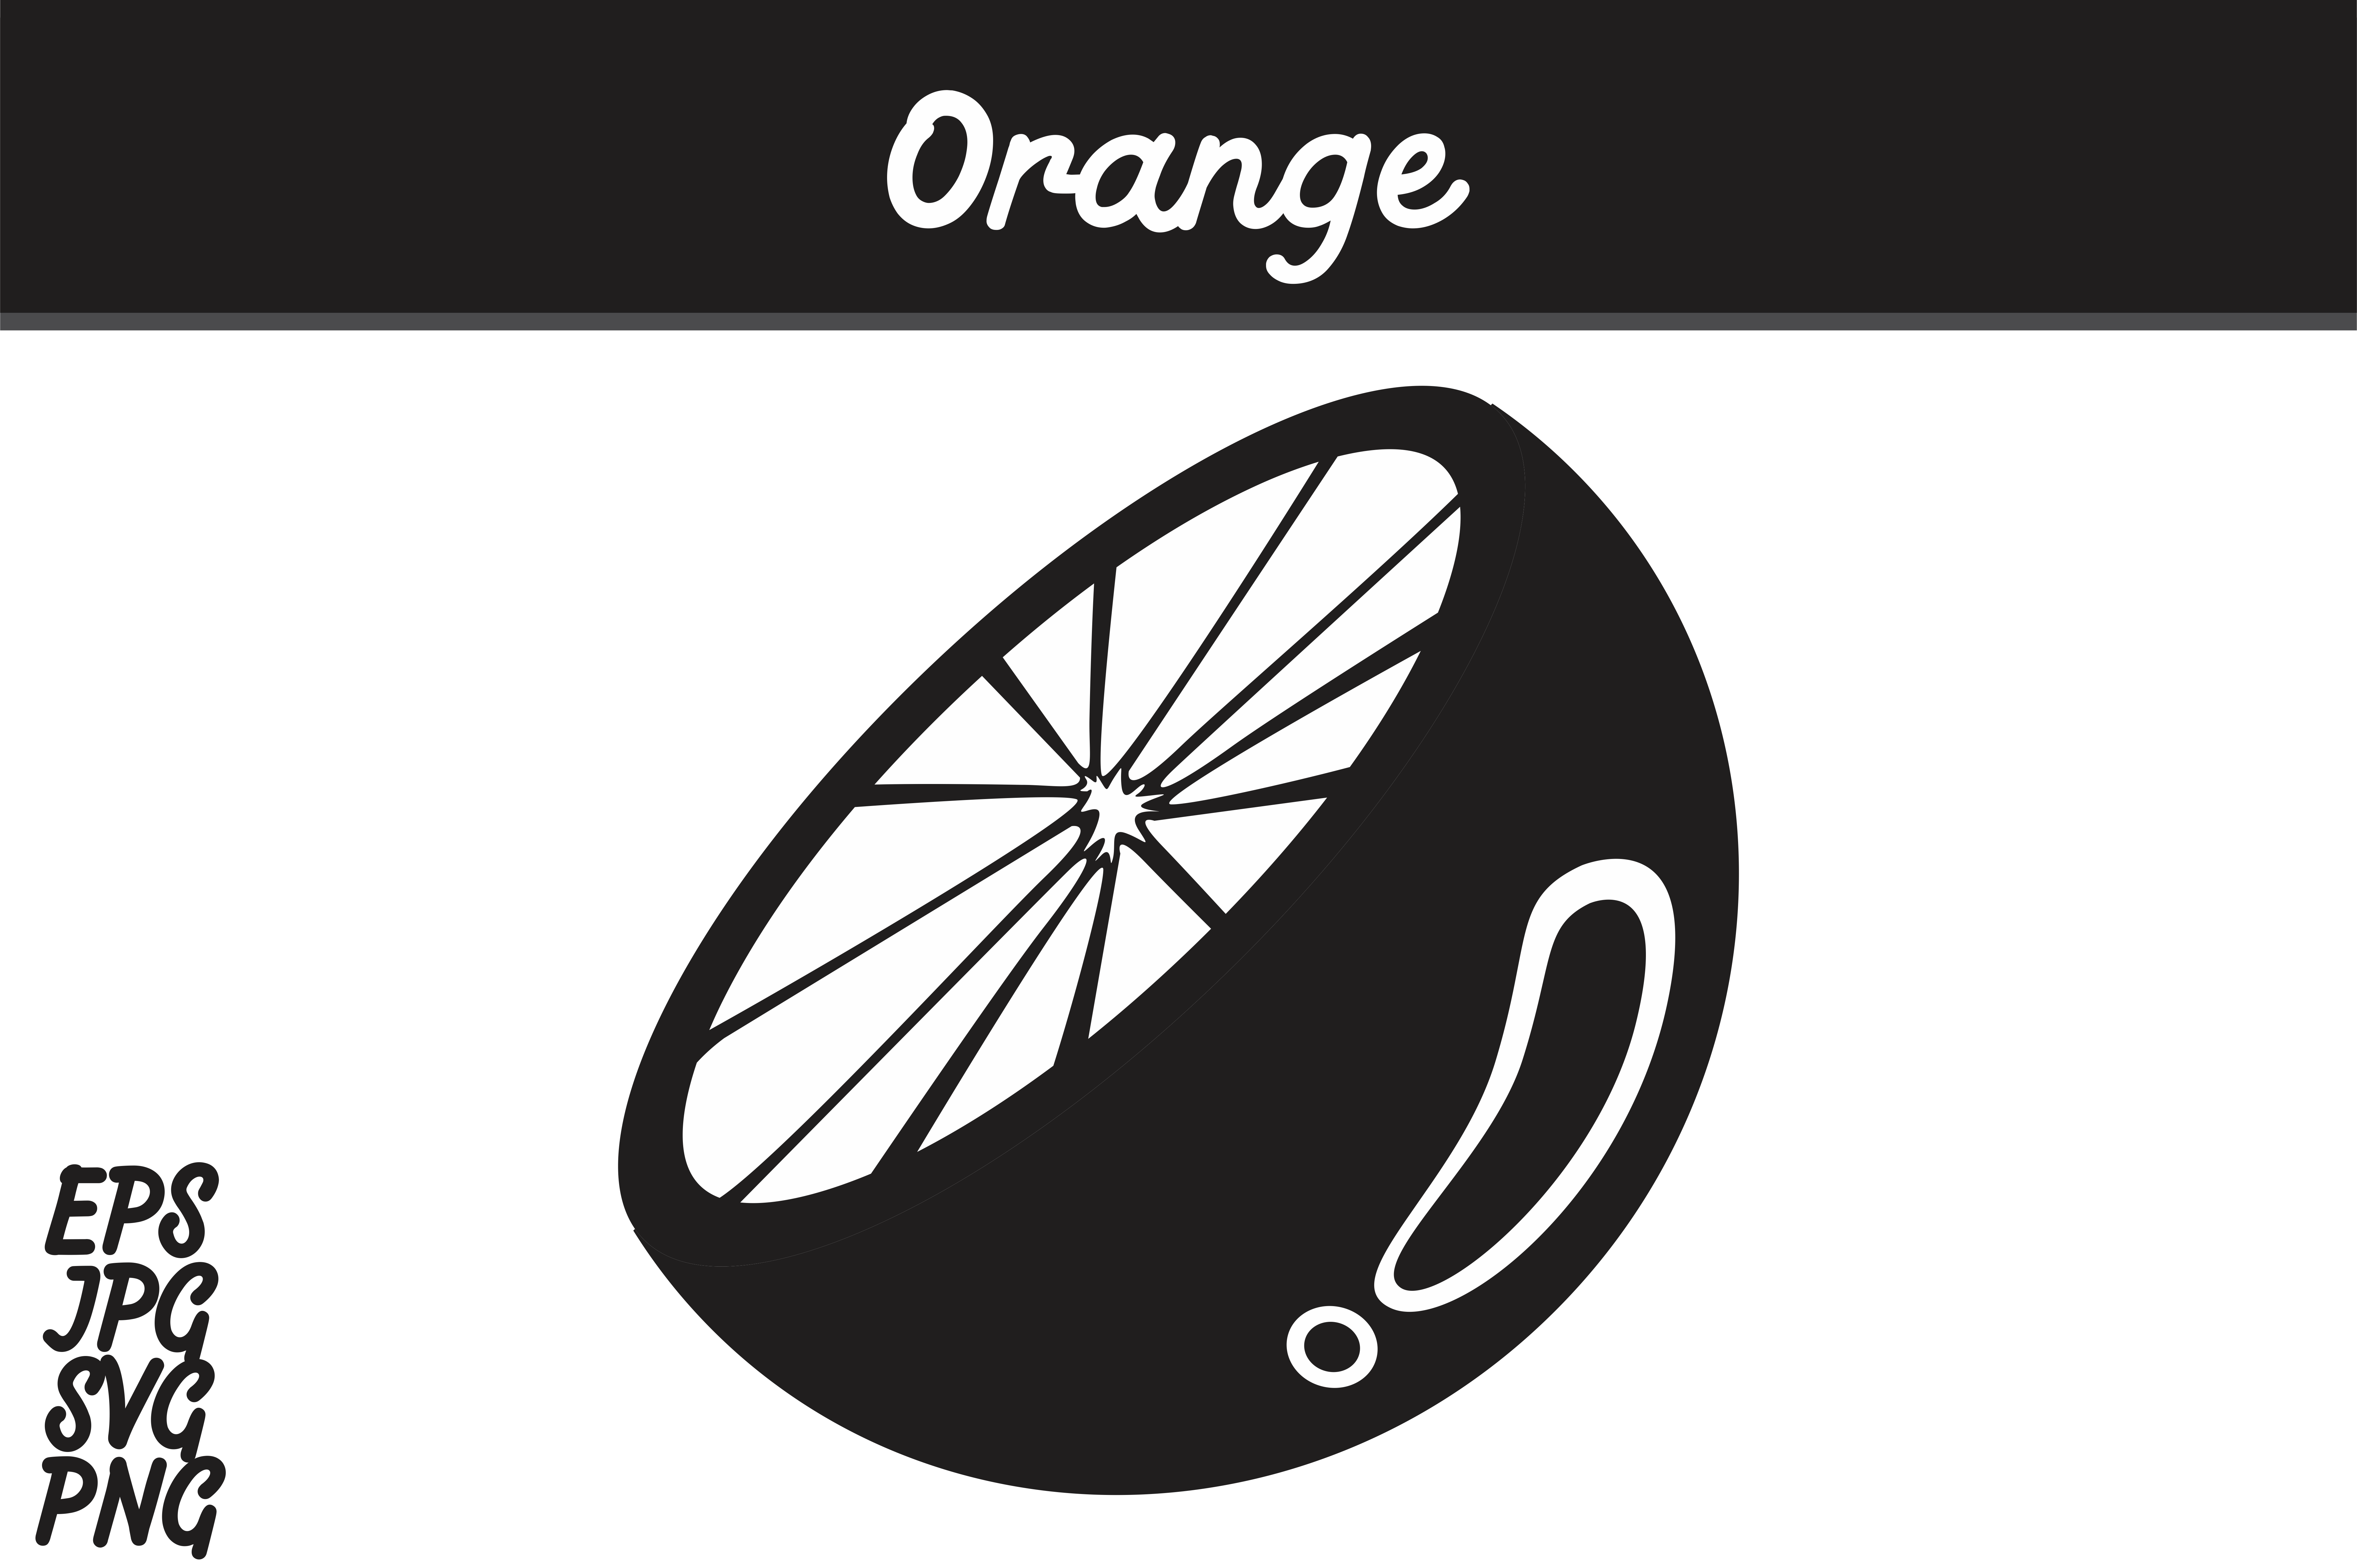 Download Free Orange Icon Svg Vector Image Graphic By Arief Sapta Adjie for Cricut Explore, Silhouette and other cutting machines.